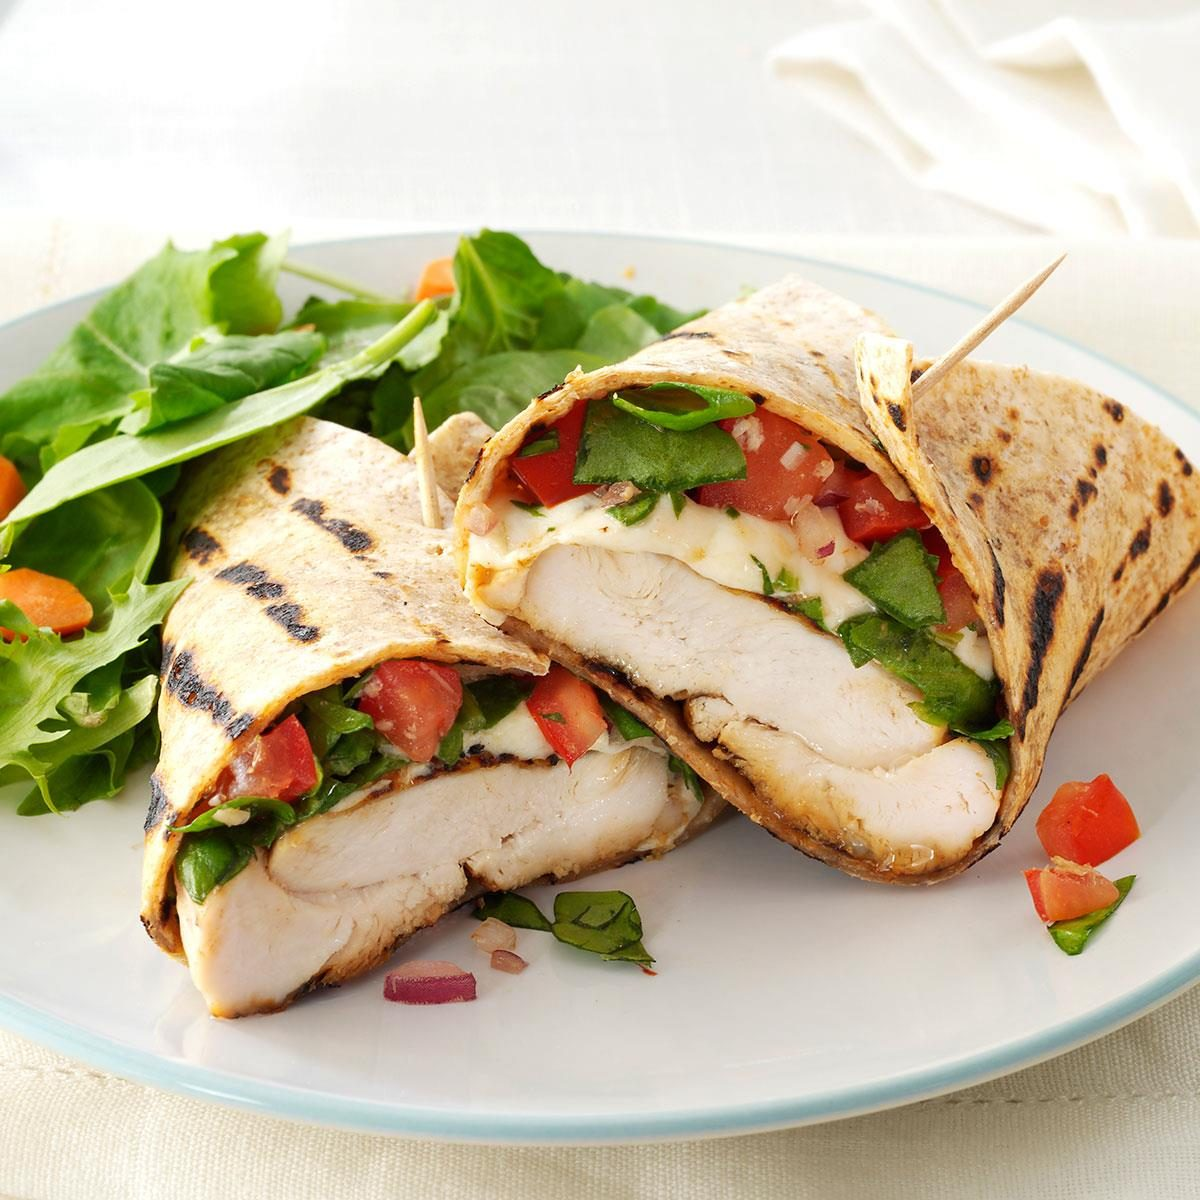 Thursday: Bruschetta Chicken Wraps